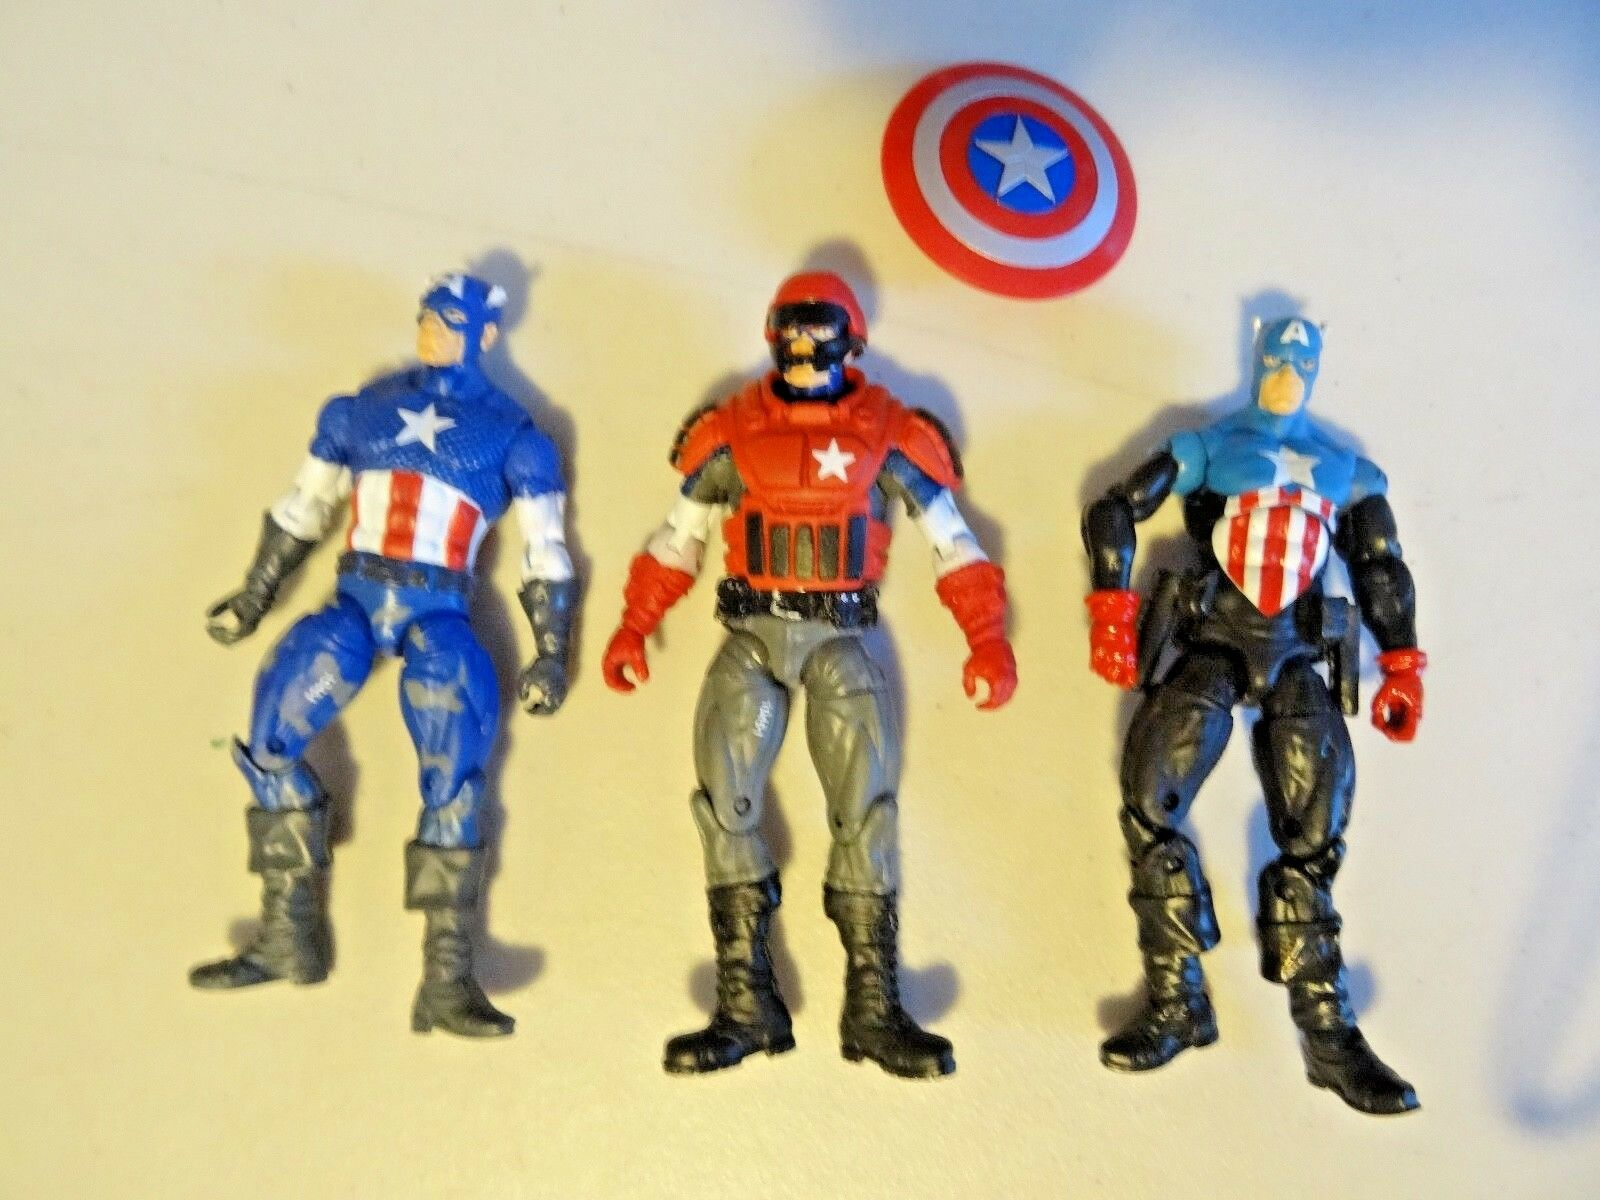 LOT OF AMERICA 3 marvel legends CAPTAIN AMERICA OF Action Figure 3.75 inch  418 MUST SEE f88543